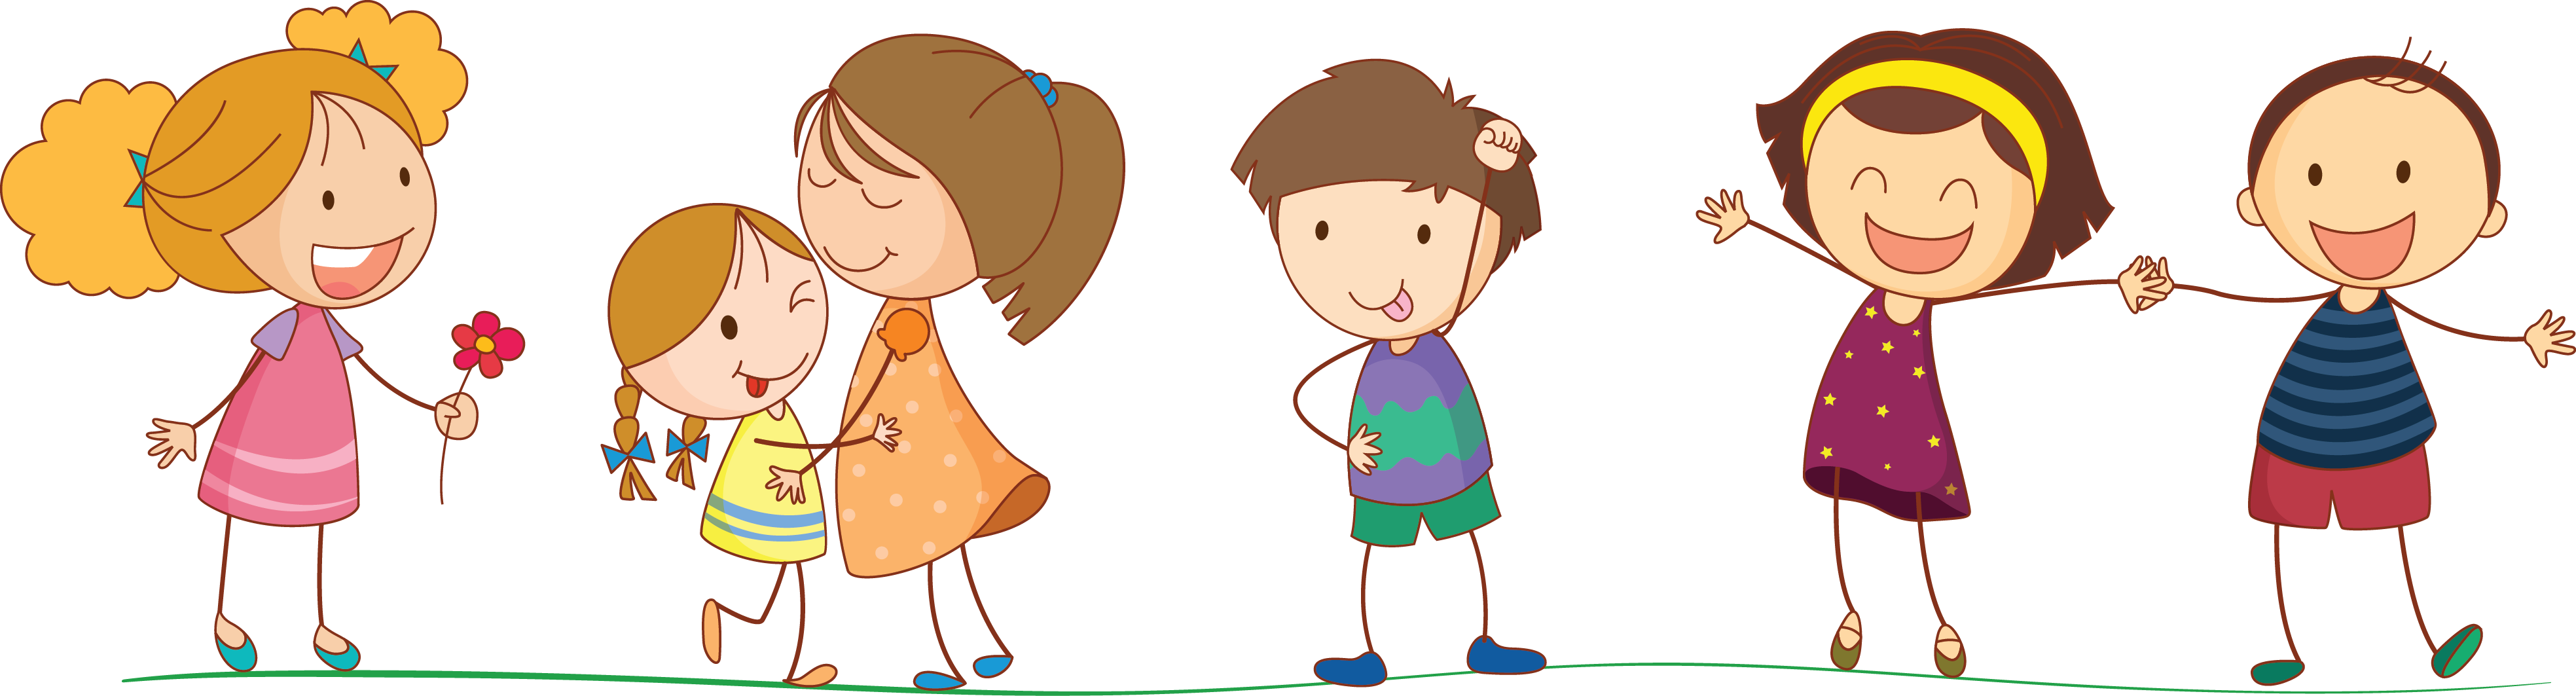 clipart freeuse library Kids clipart png. Transparent pictures free icons.